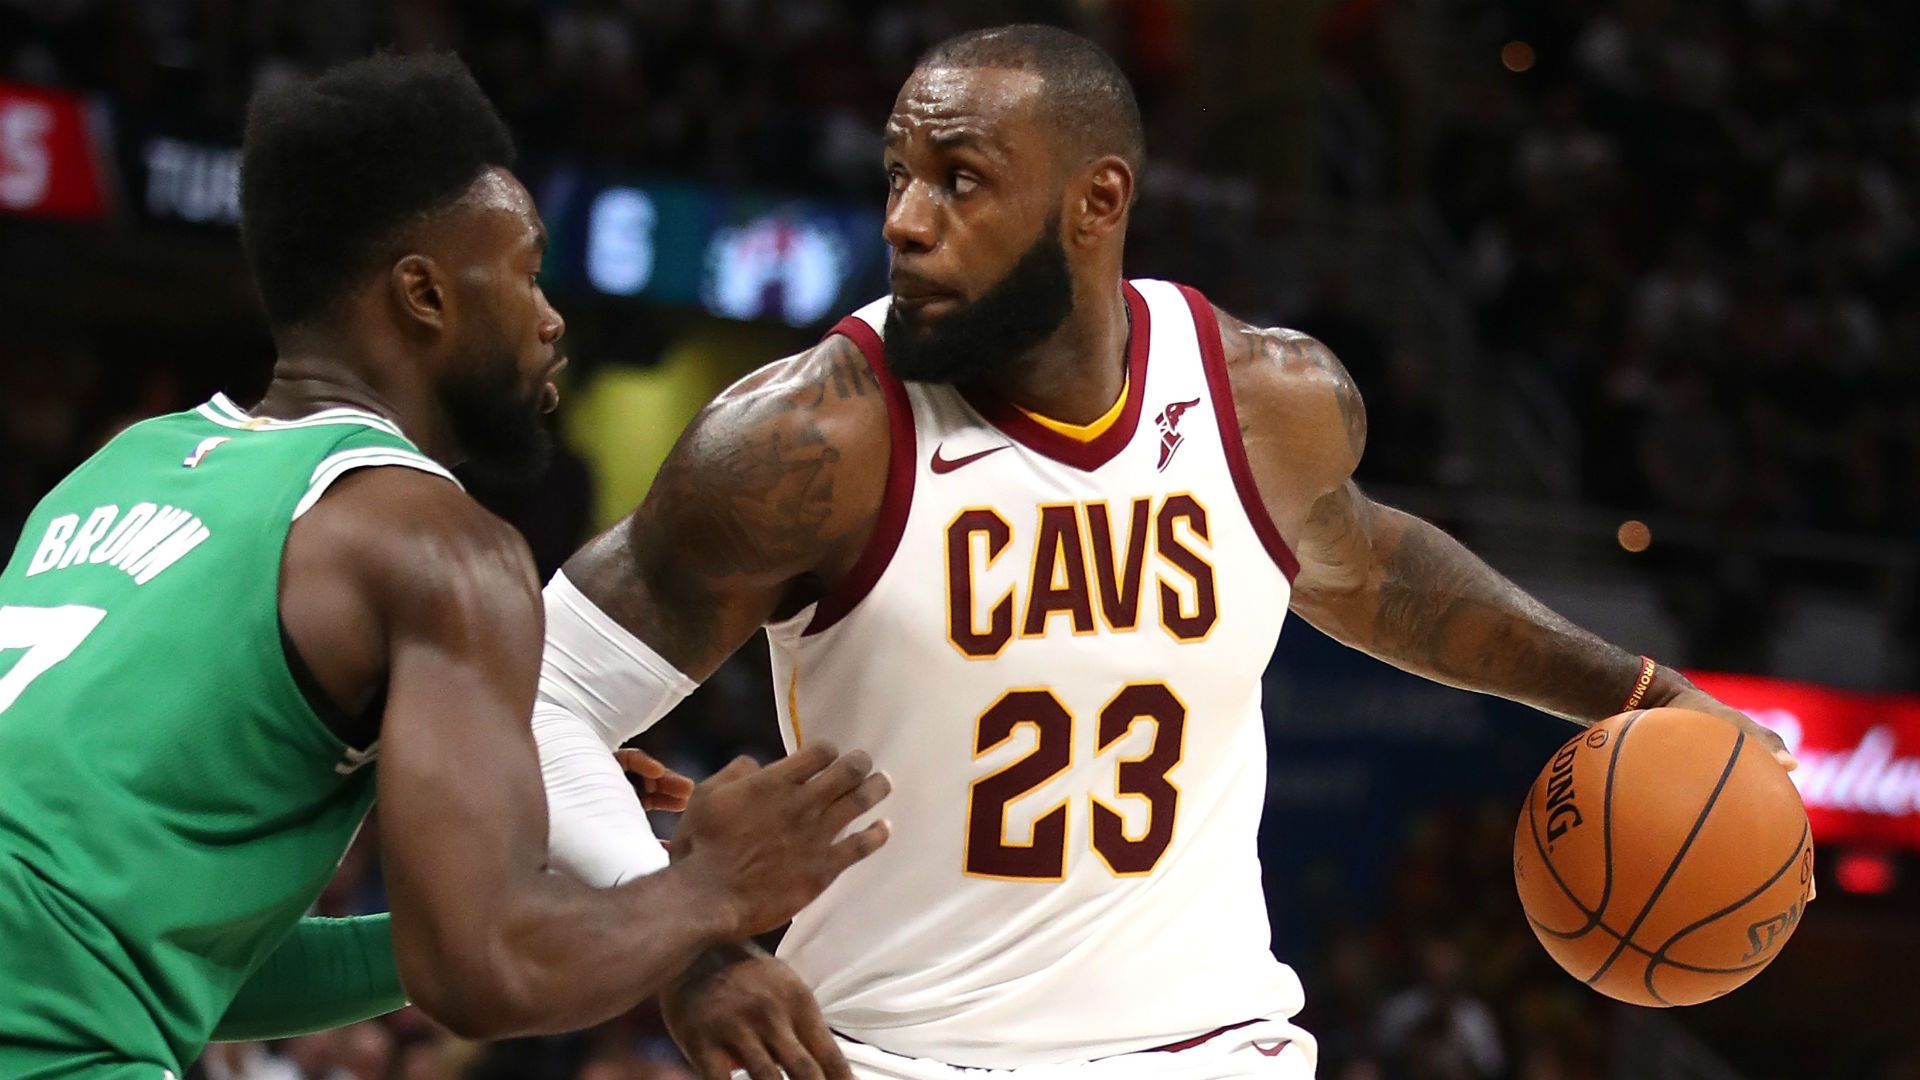 Lakers Rumors: LeBron James Not Pressuring Los Angeles to Acquire Another Star